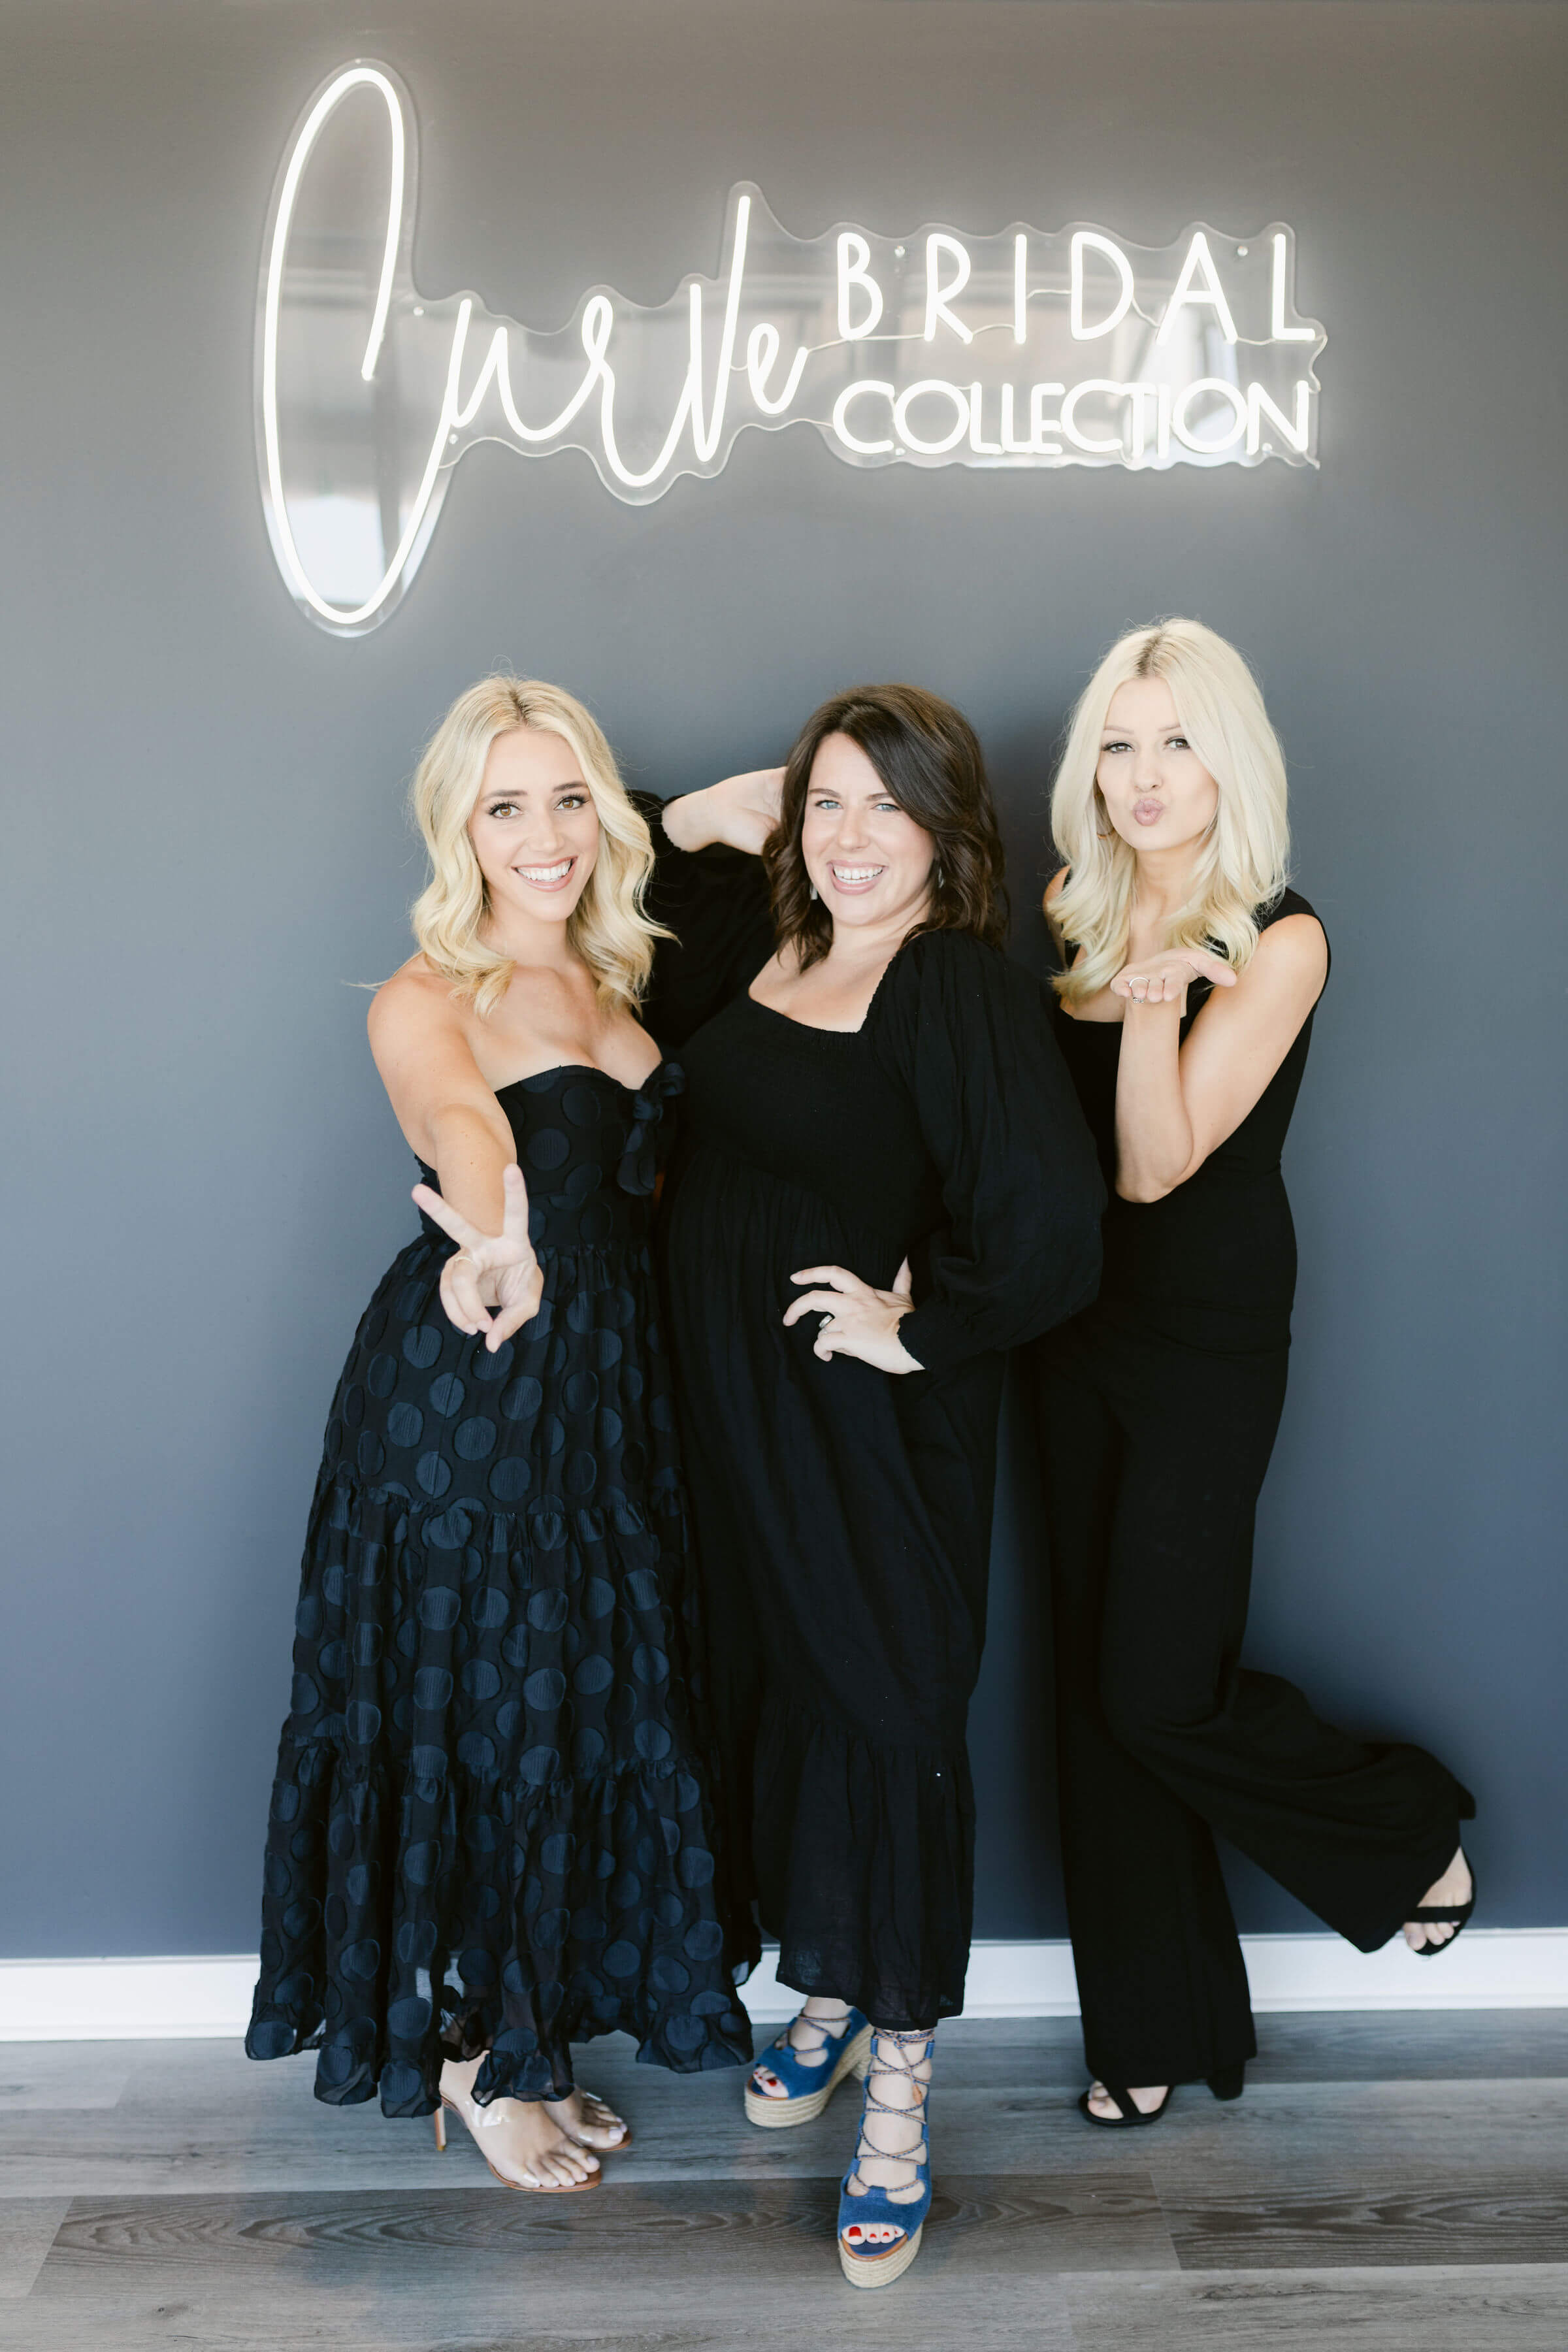 Curve Bridal Collection Store Owners